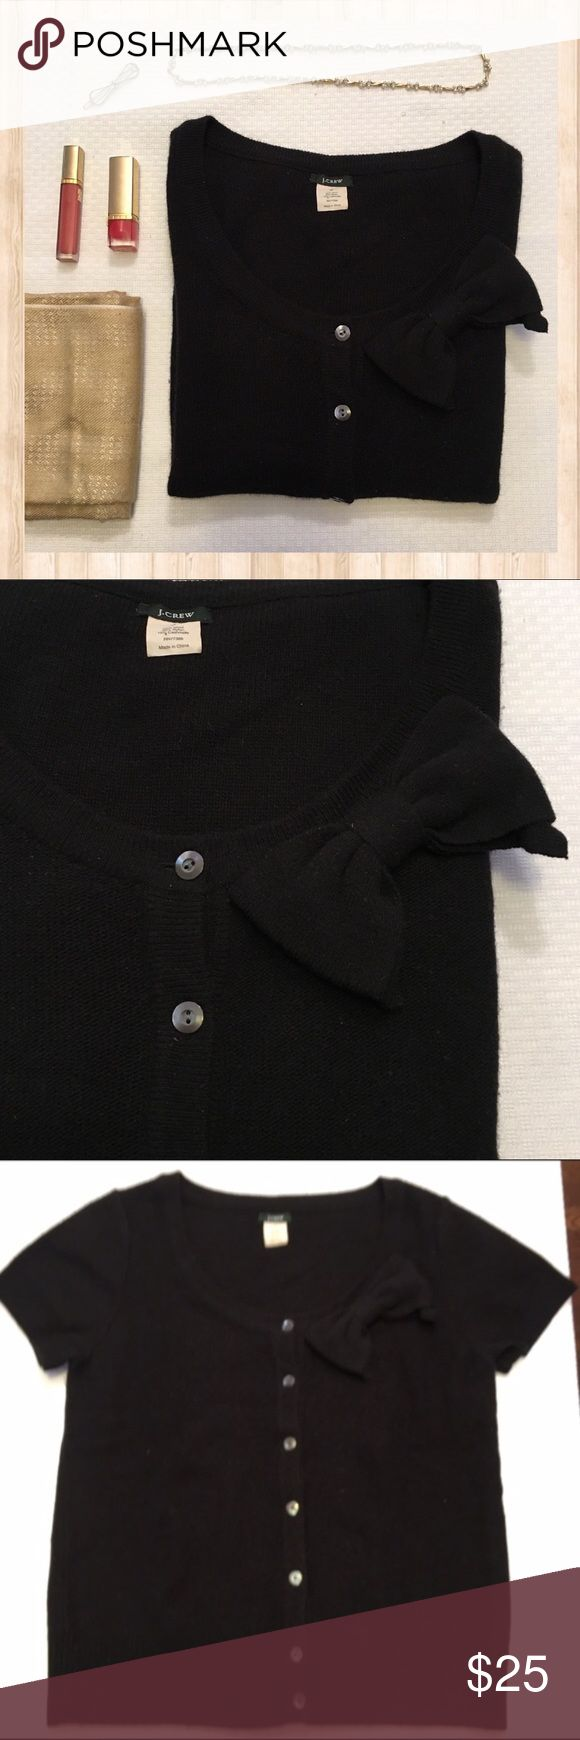 J. Crew Valerie Bow black short sleeve cardigan J. Crew black short sleeve bow cardigan.  Wool and cashmere blend.  Has some pilling as pictured in the 5th photo.  All prices are negotiable so 💕Make offers💕 🚫No trades🚫 J. Crew Sweaters Cardigans